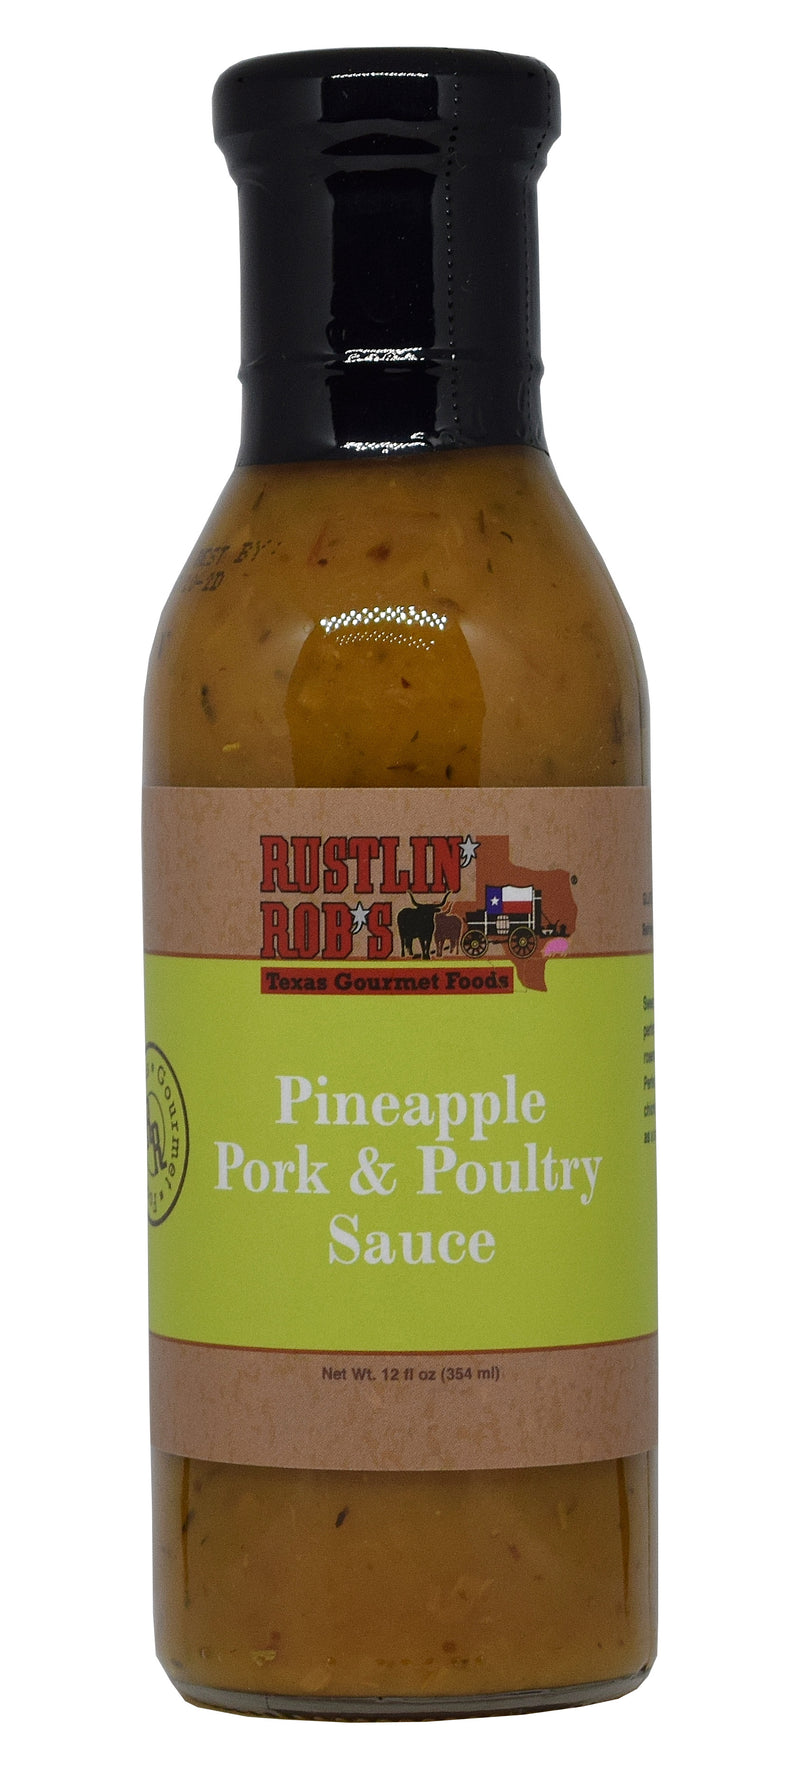 Pineapple Pork & Poultry Sauce